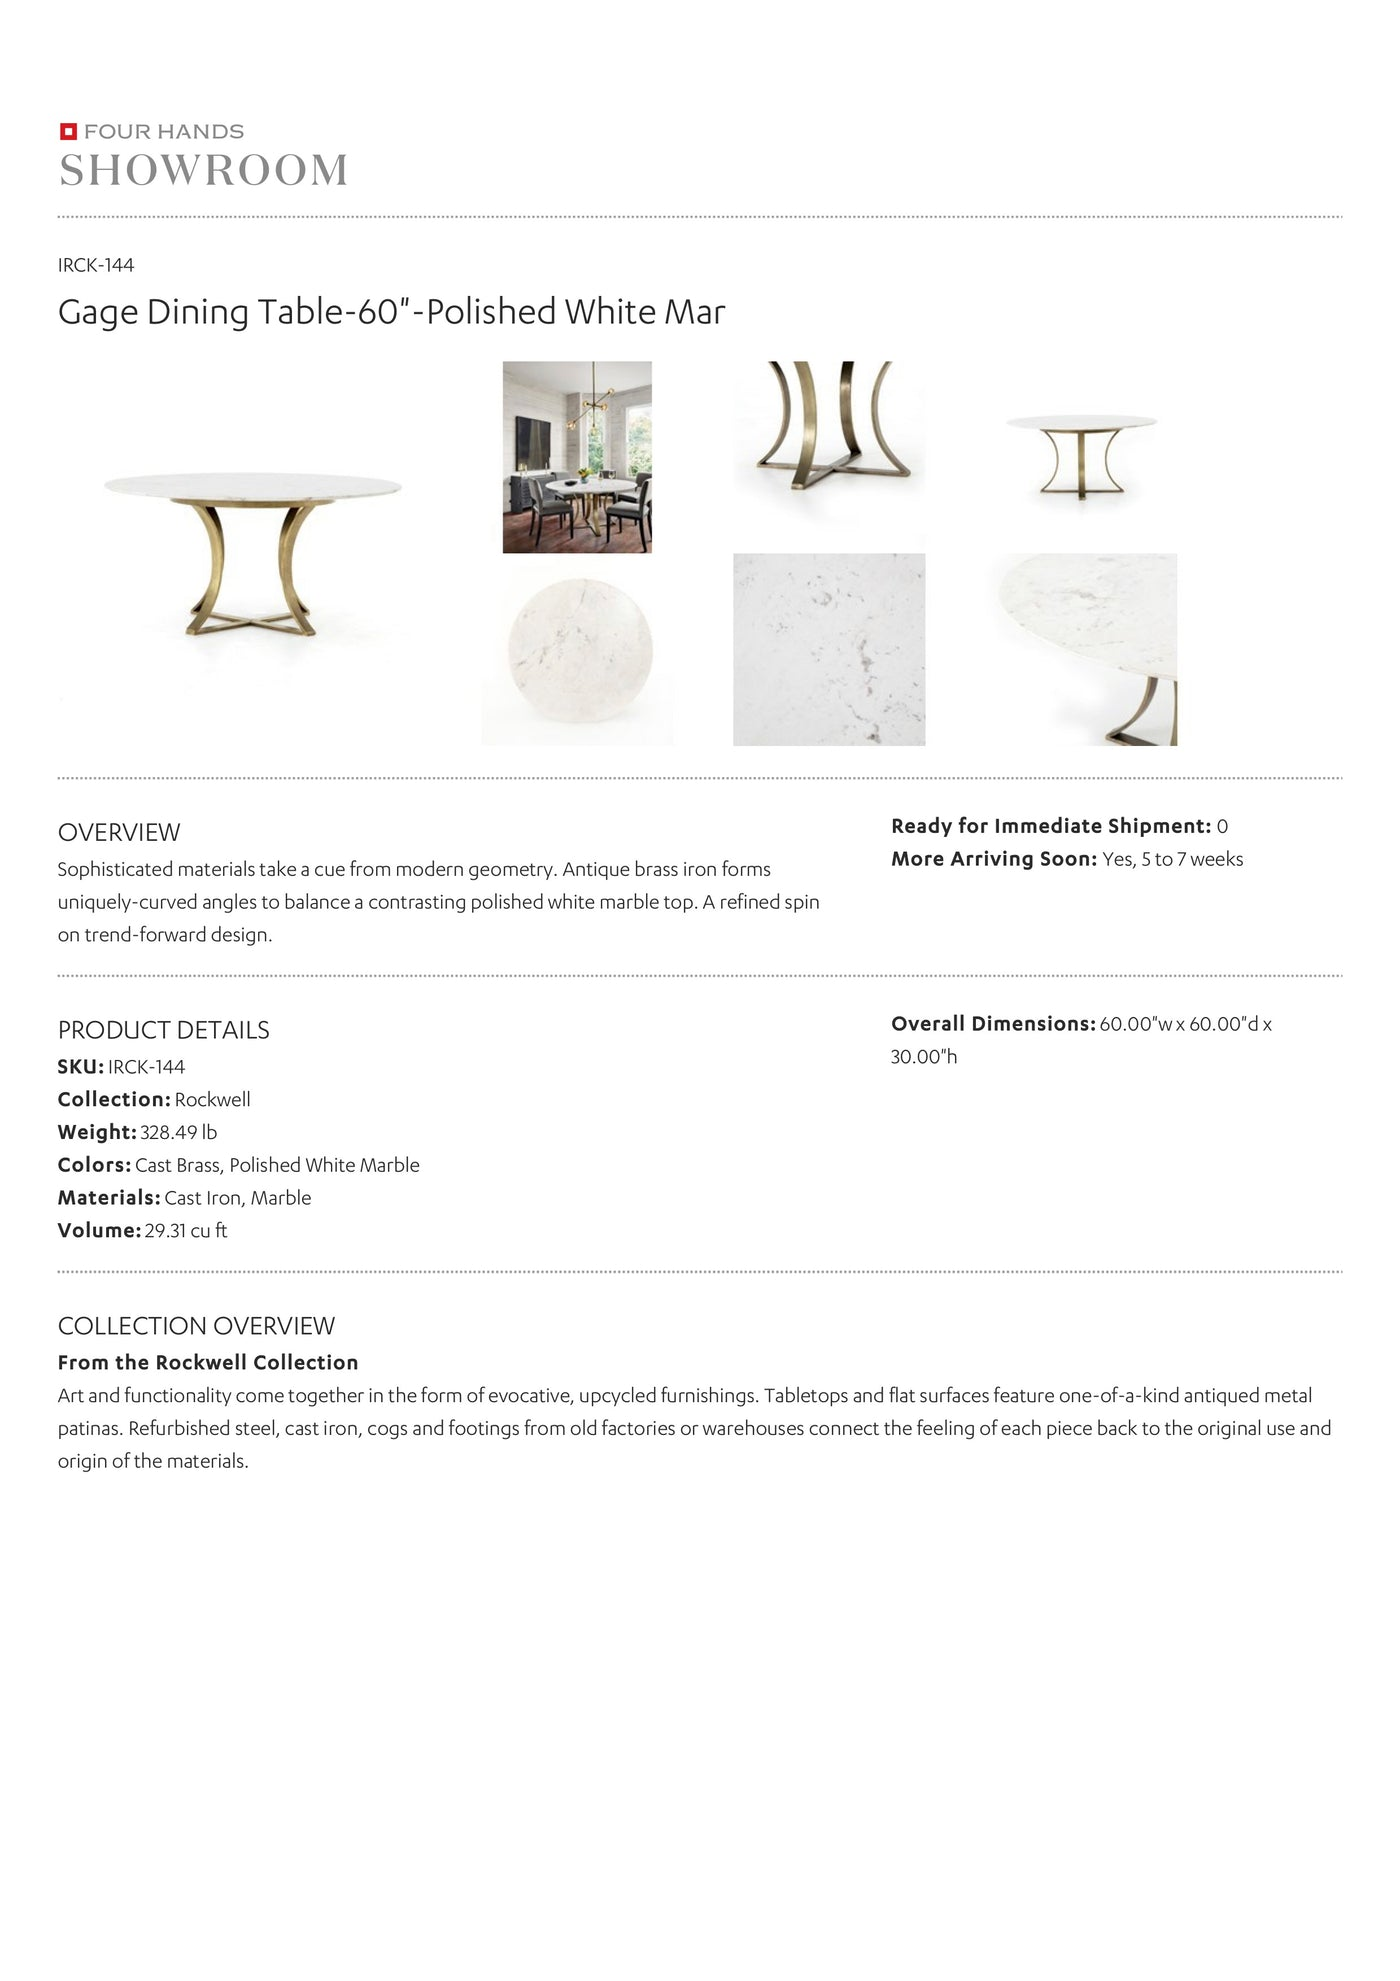 four hands gage dining table tearsheet